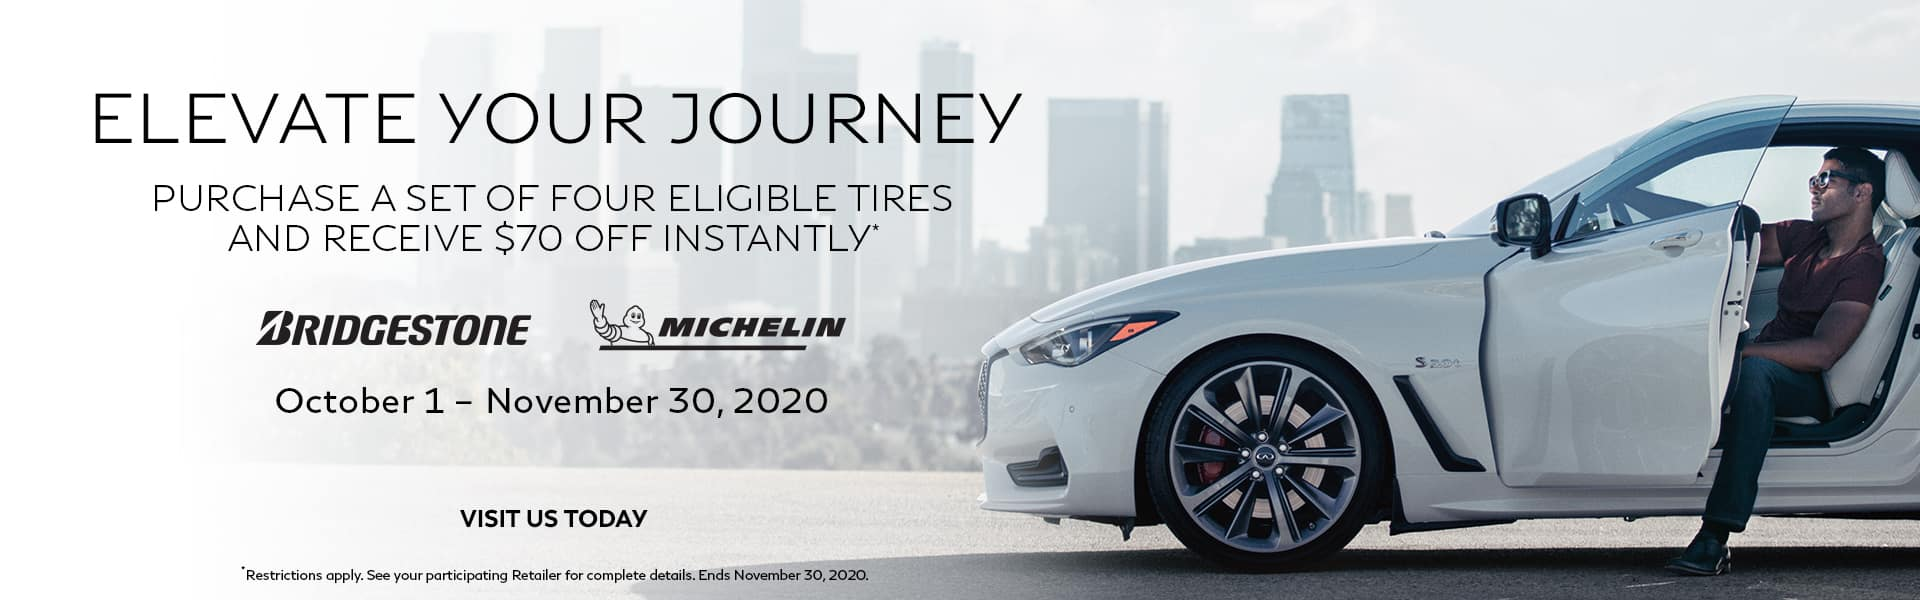 Purchase a set of Four eligible tires and receive $70 OFF instantly!